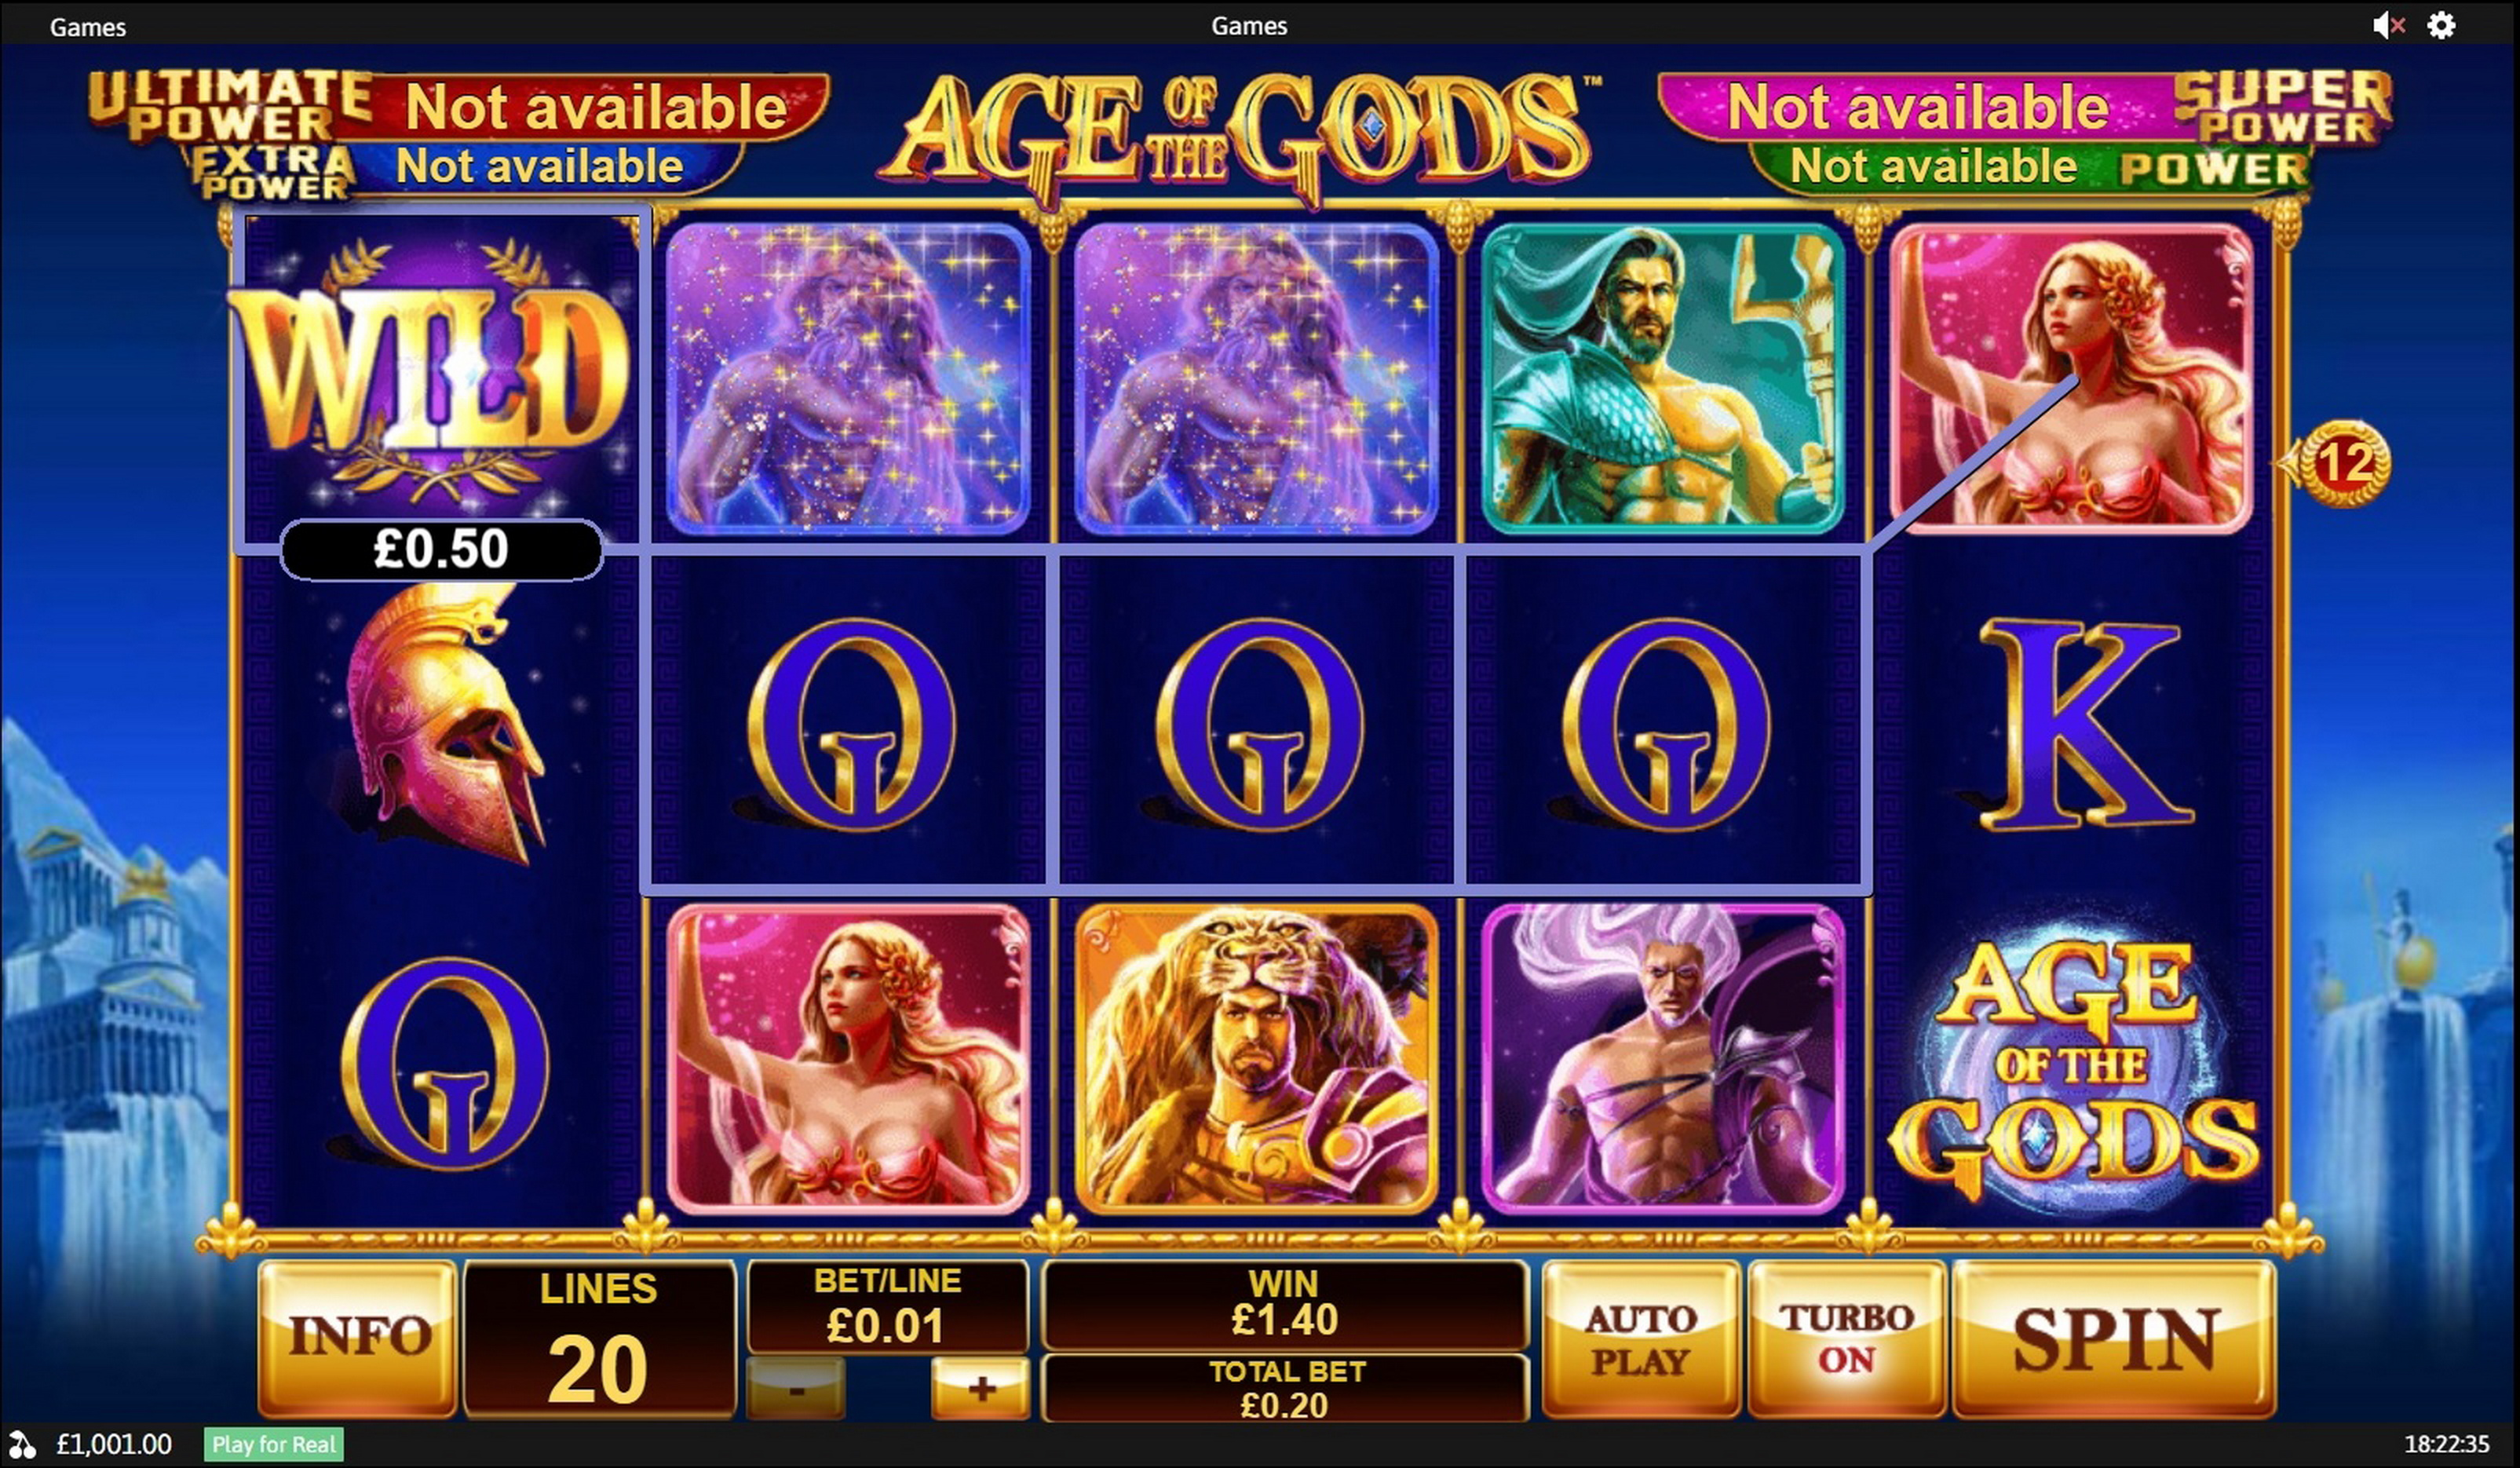 Win Money in Age of the Gods Free Slot Game by Playtech